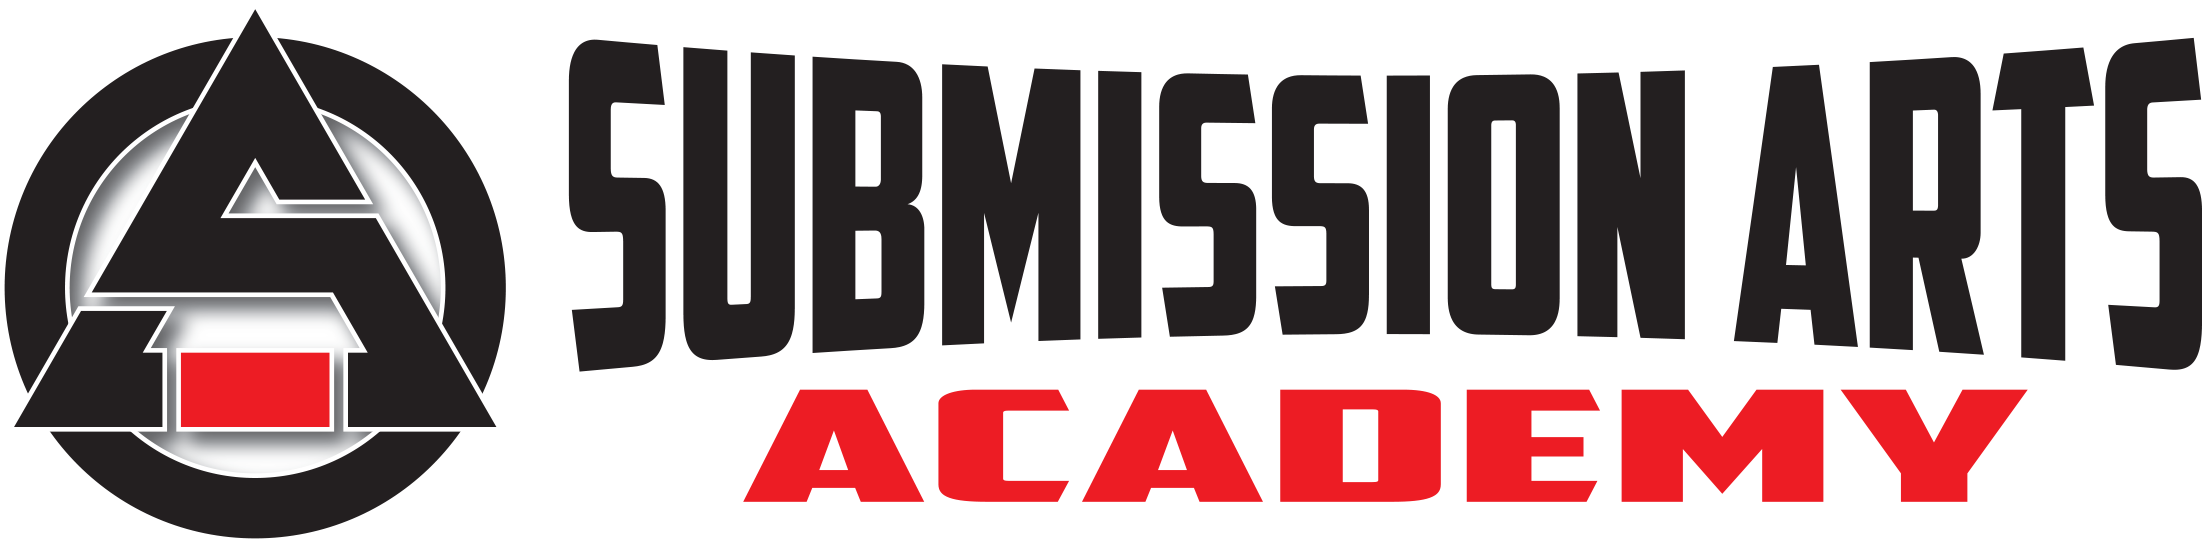 Submission Arts Academy logo